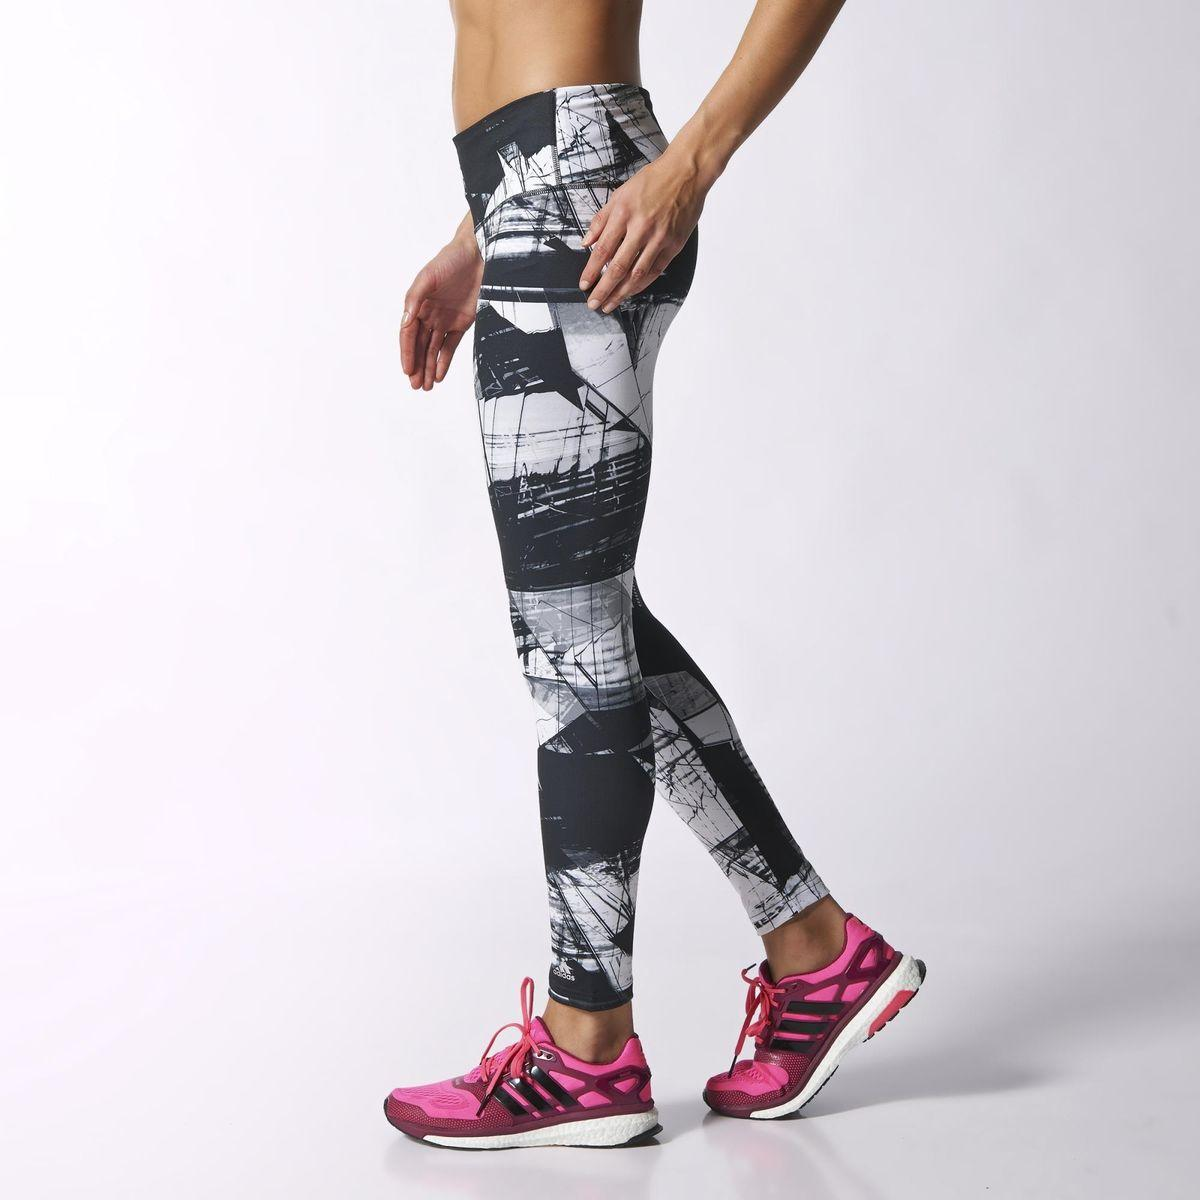 33e5d76a81c Adidas Womens Ultimate Fit Highrise Tights - White/Black ...